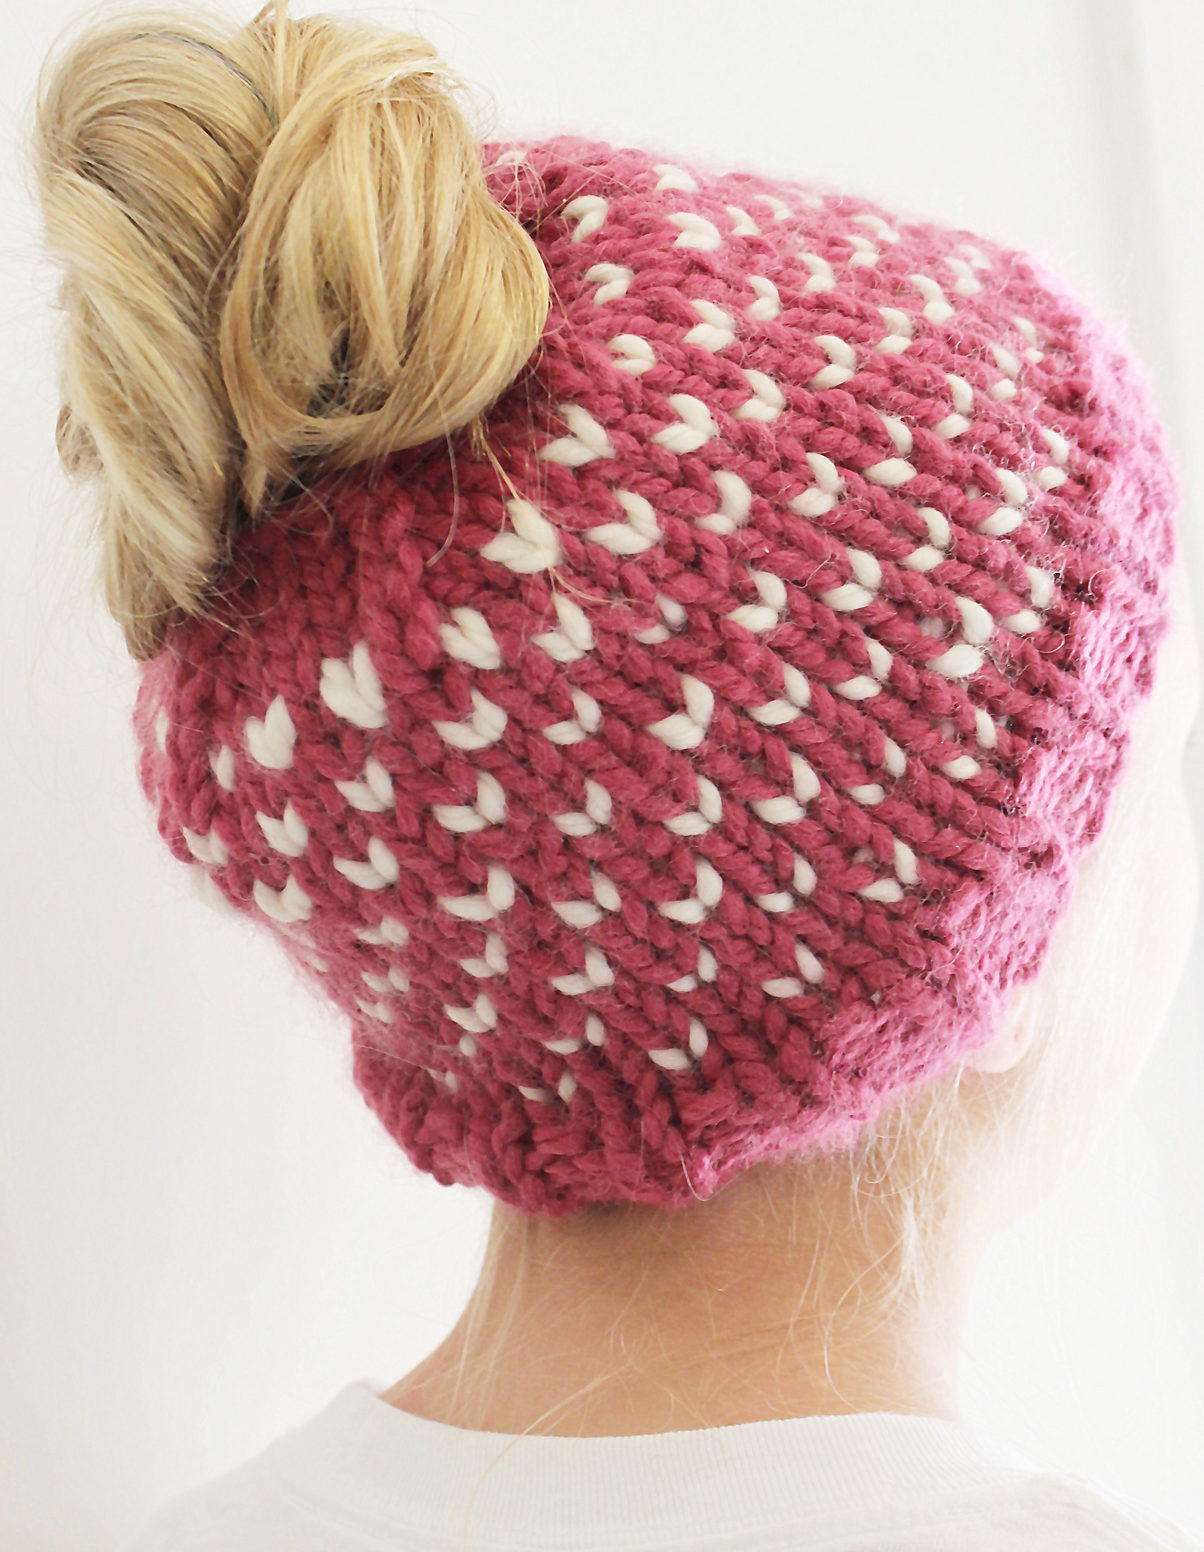 Knitting Pattern for Hearts Bun Hat